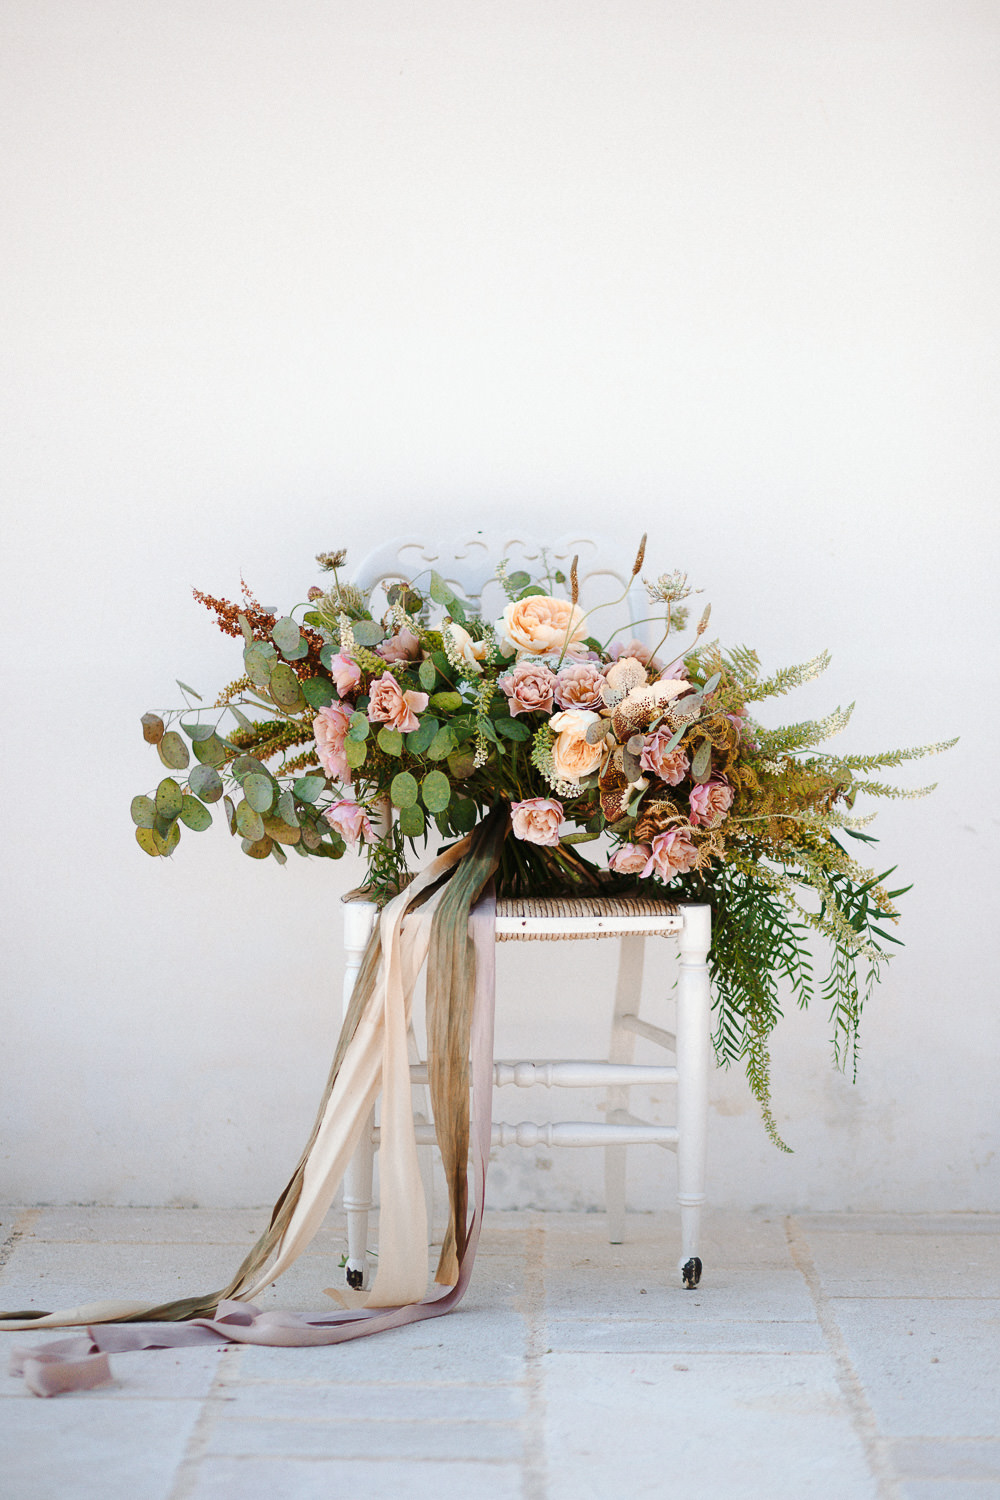 Gorgeous wedding bouquet created by Chiara Sperti | Photo: Camilla Anchisi Photography